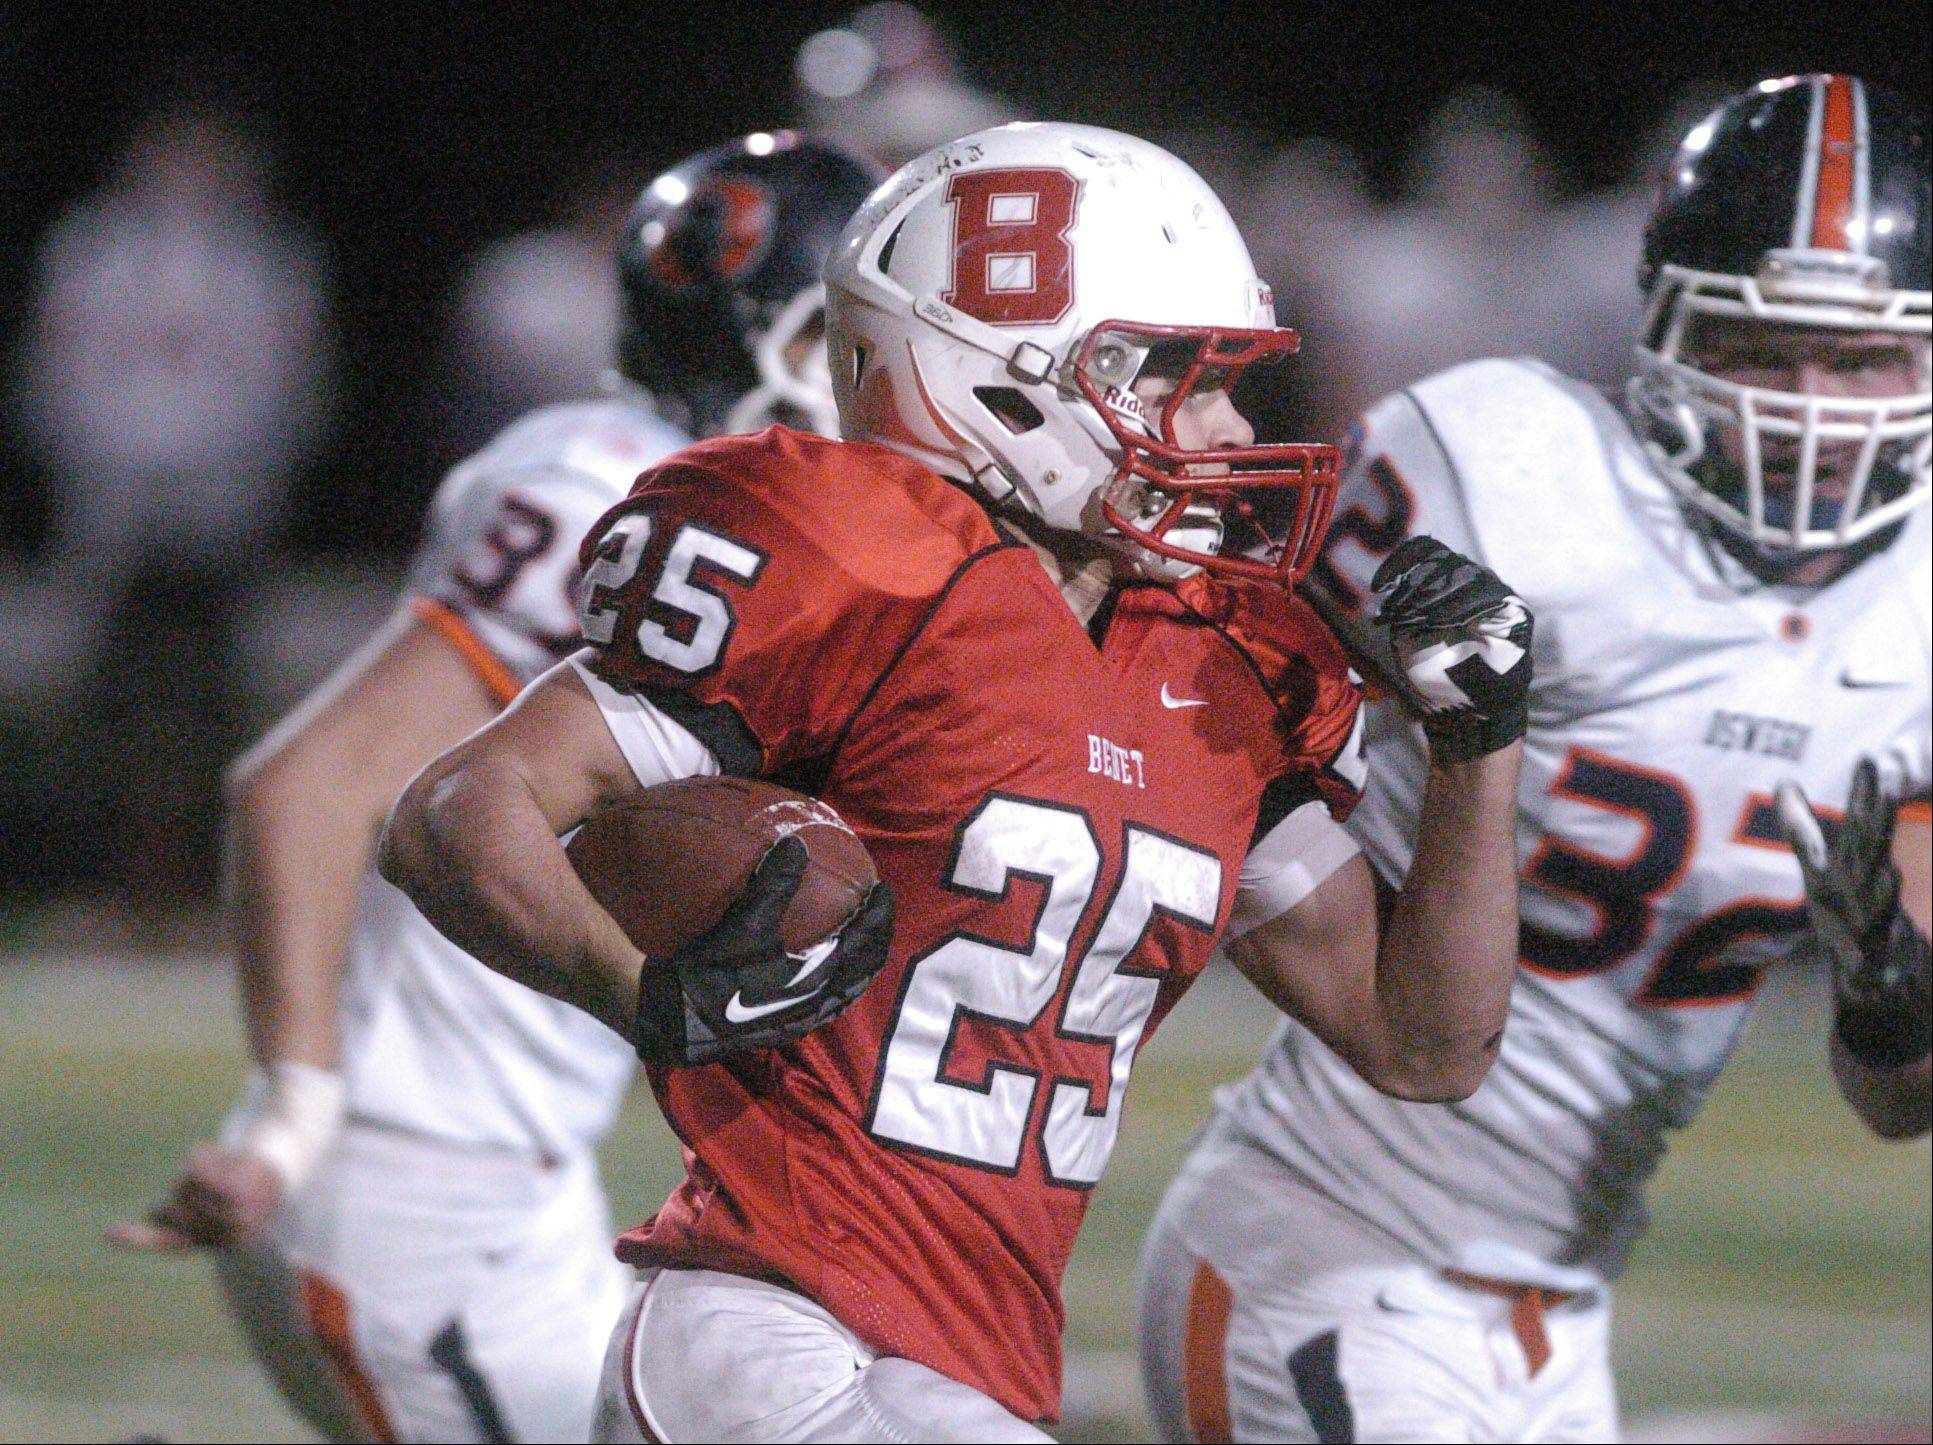 Porter Ontko of Benet runs the ball.